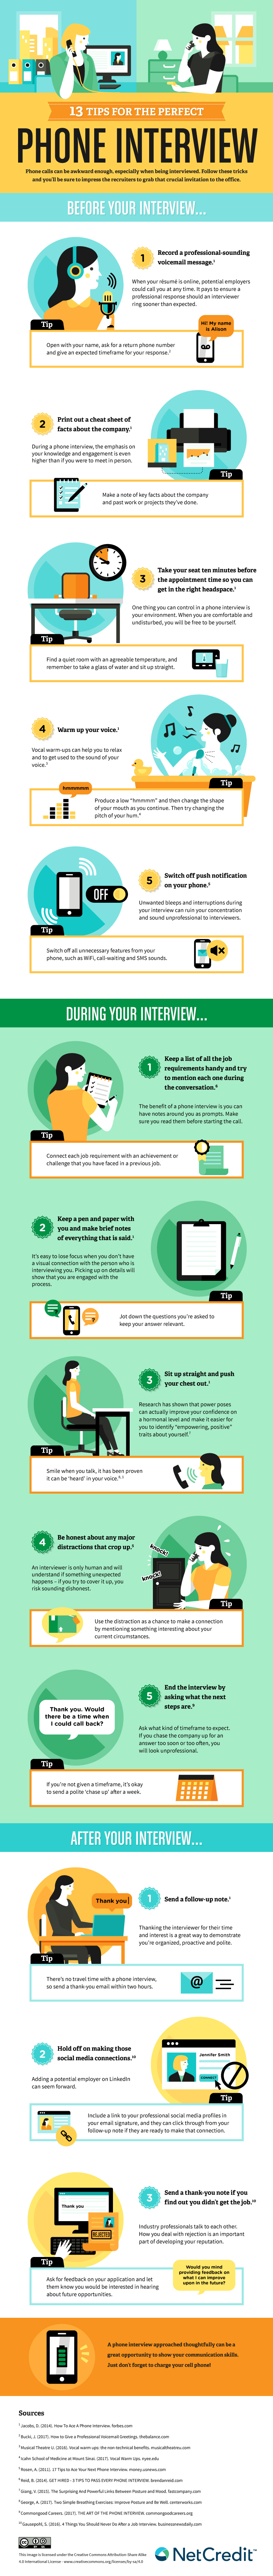 13 Tips for the Perfect Phone Interview_Women